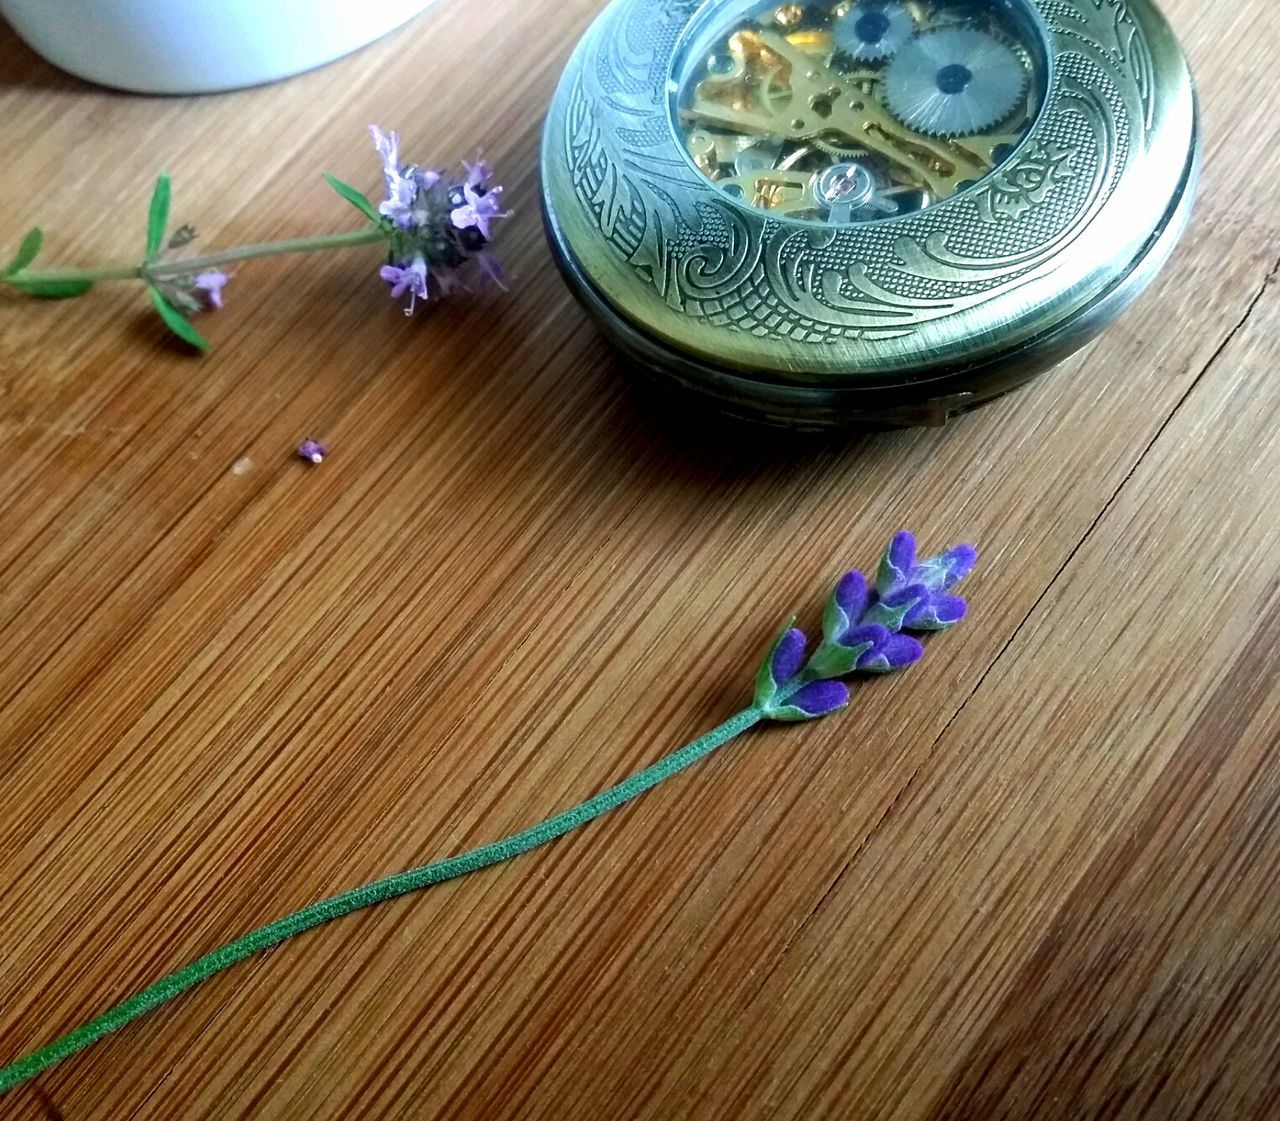 Table Indoors  Wood - Material High Angle View Flower Freshness Close-up Herbal Fragility